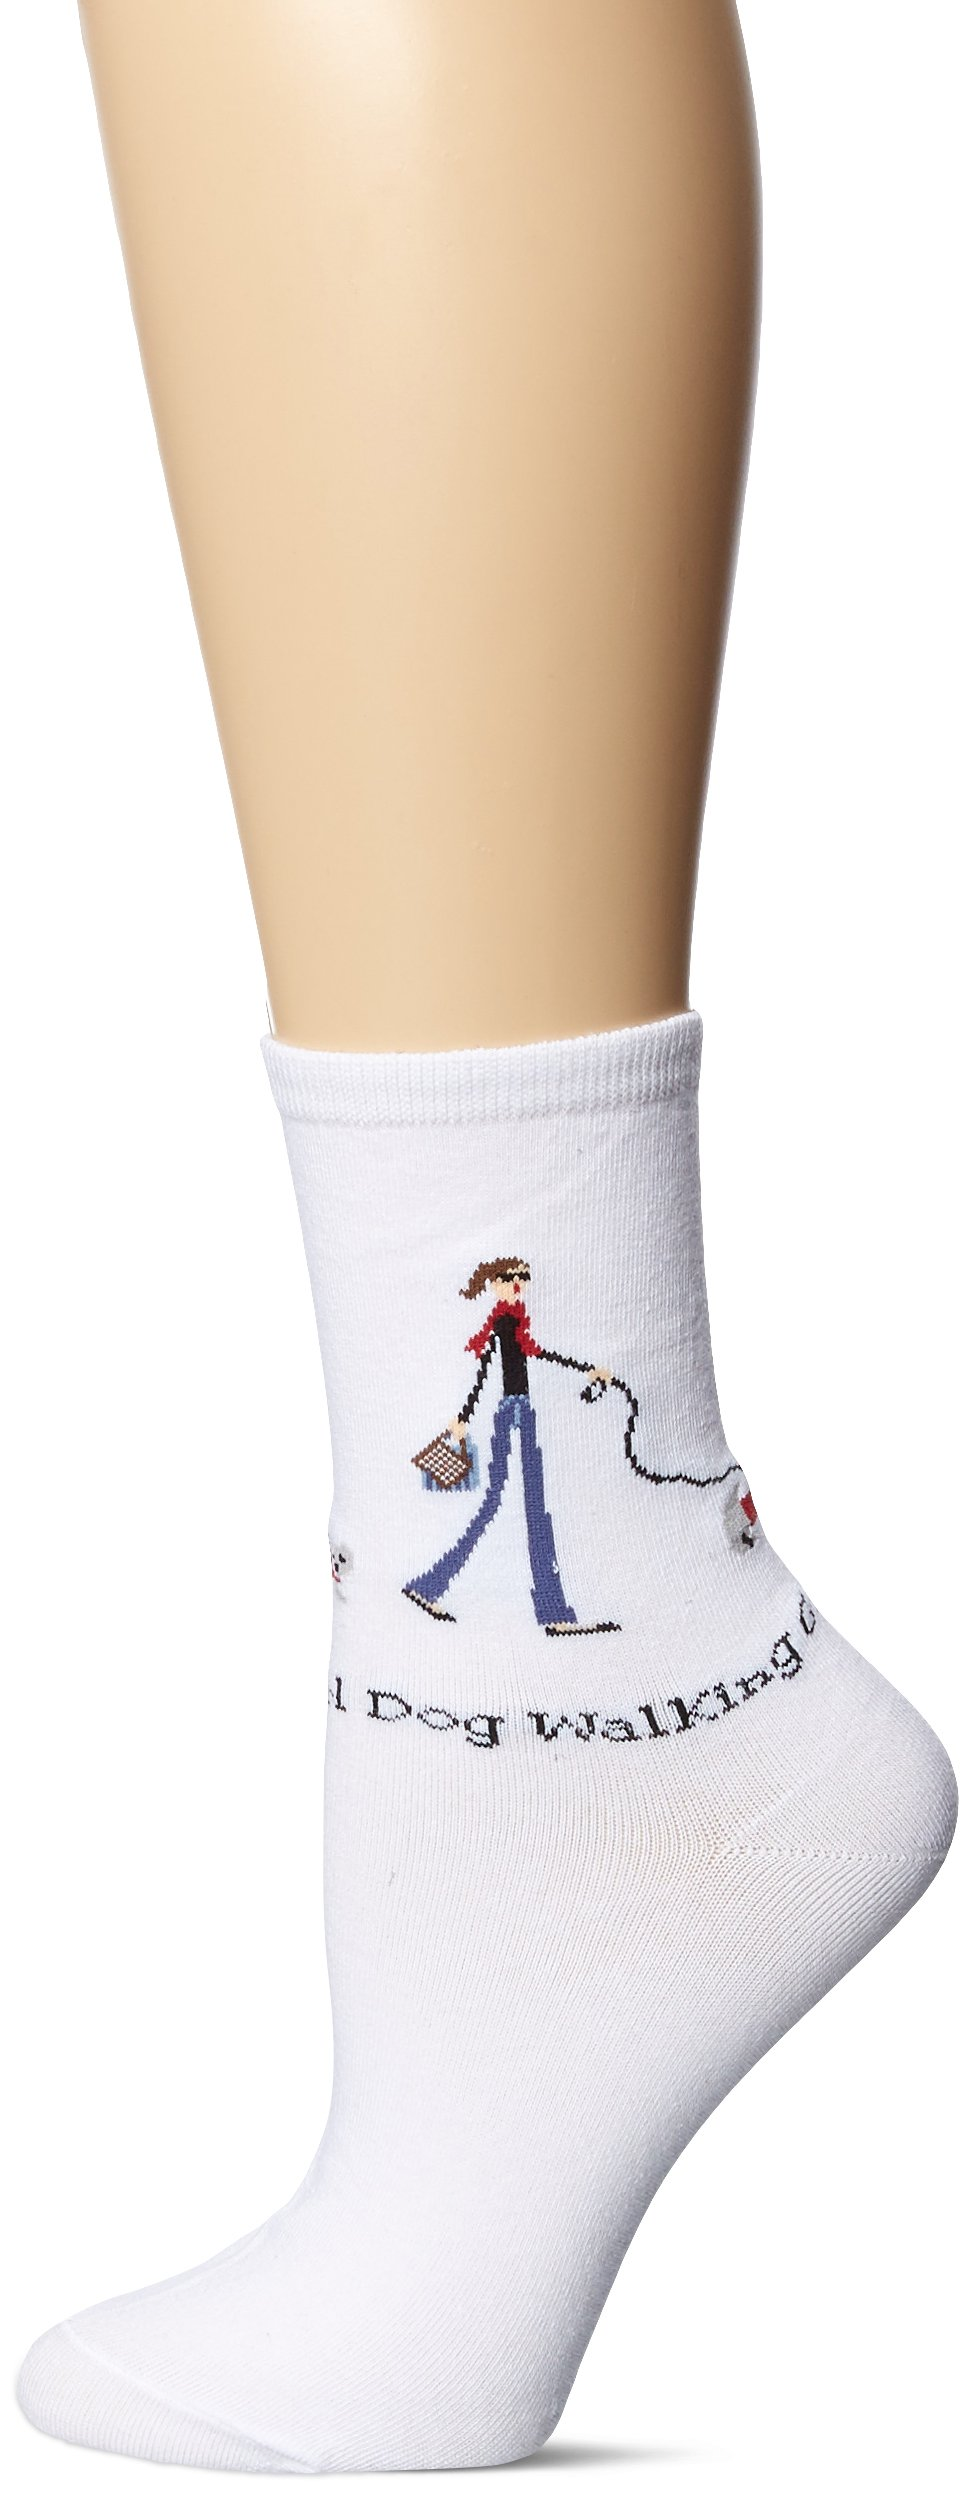 K. Bell Women's Novelty Girl Power Socks